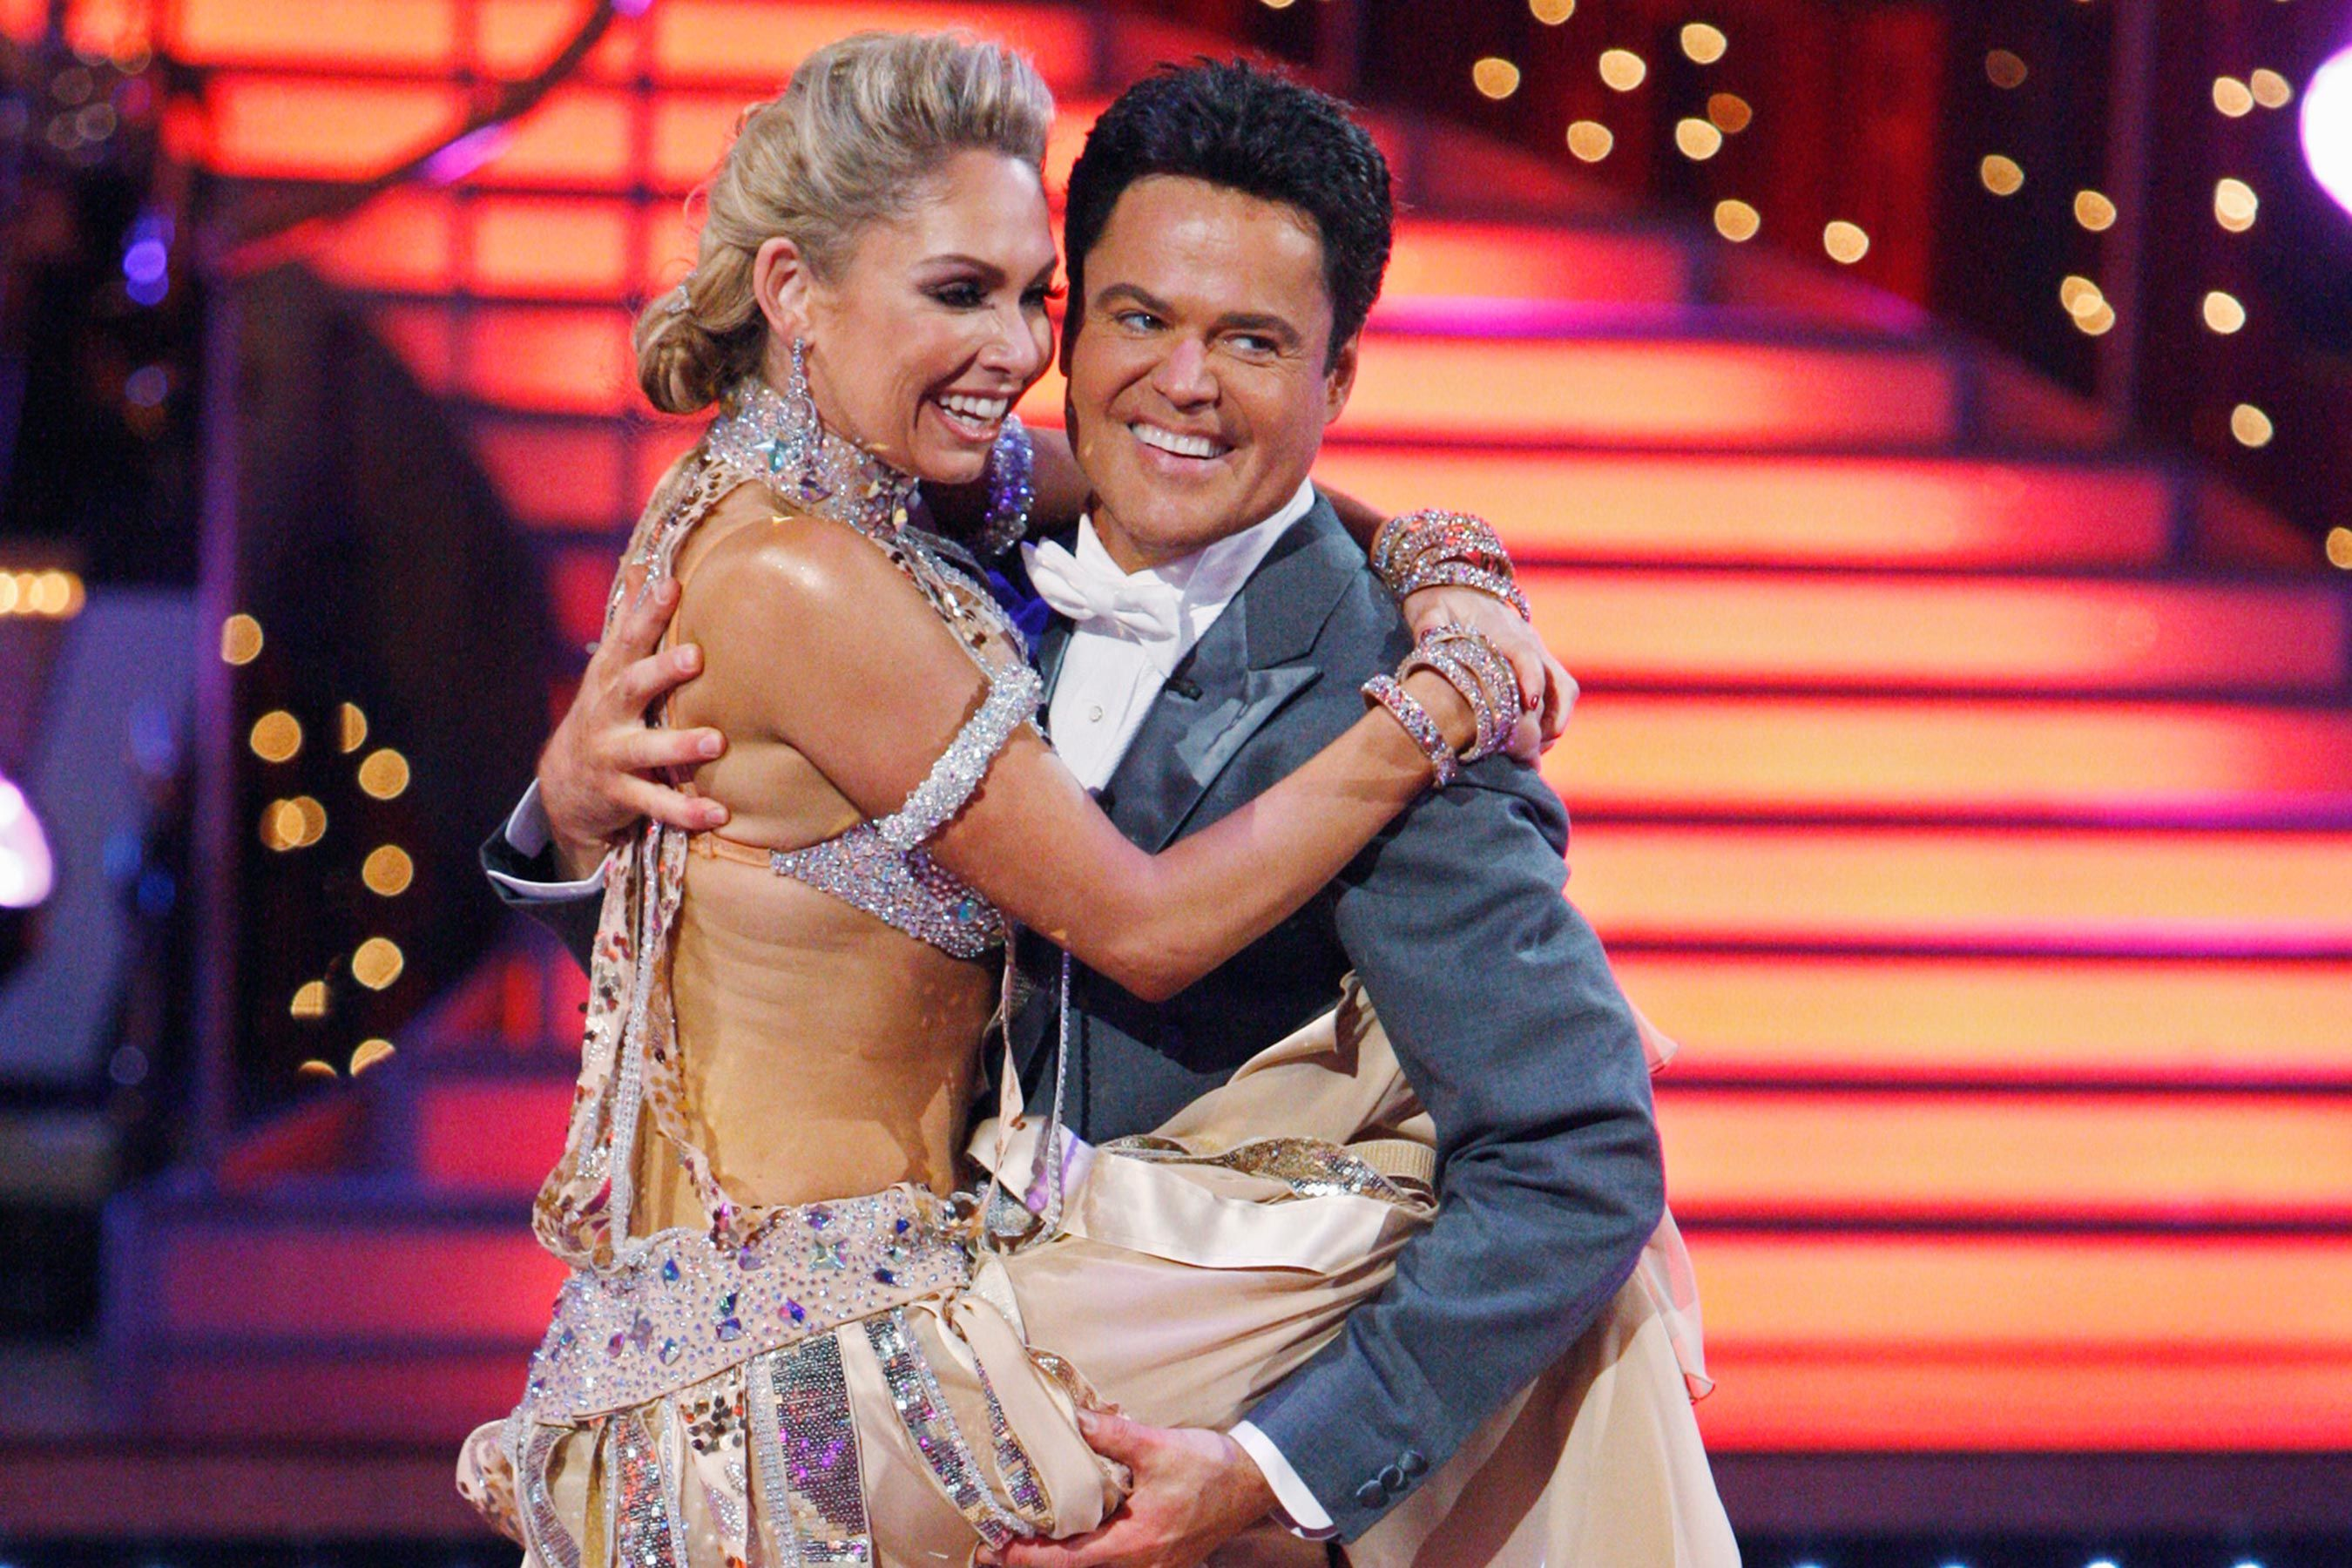 Dwts Winner Donny Osmond Will Be Back In The Ballroom Tuesday Puppy Lovers Dwts Winners Donny Osmond Dancing With The Stars